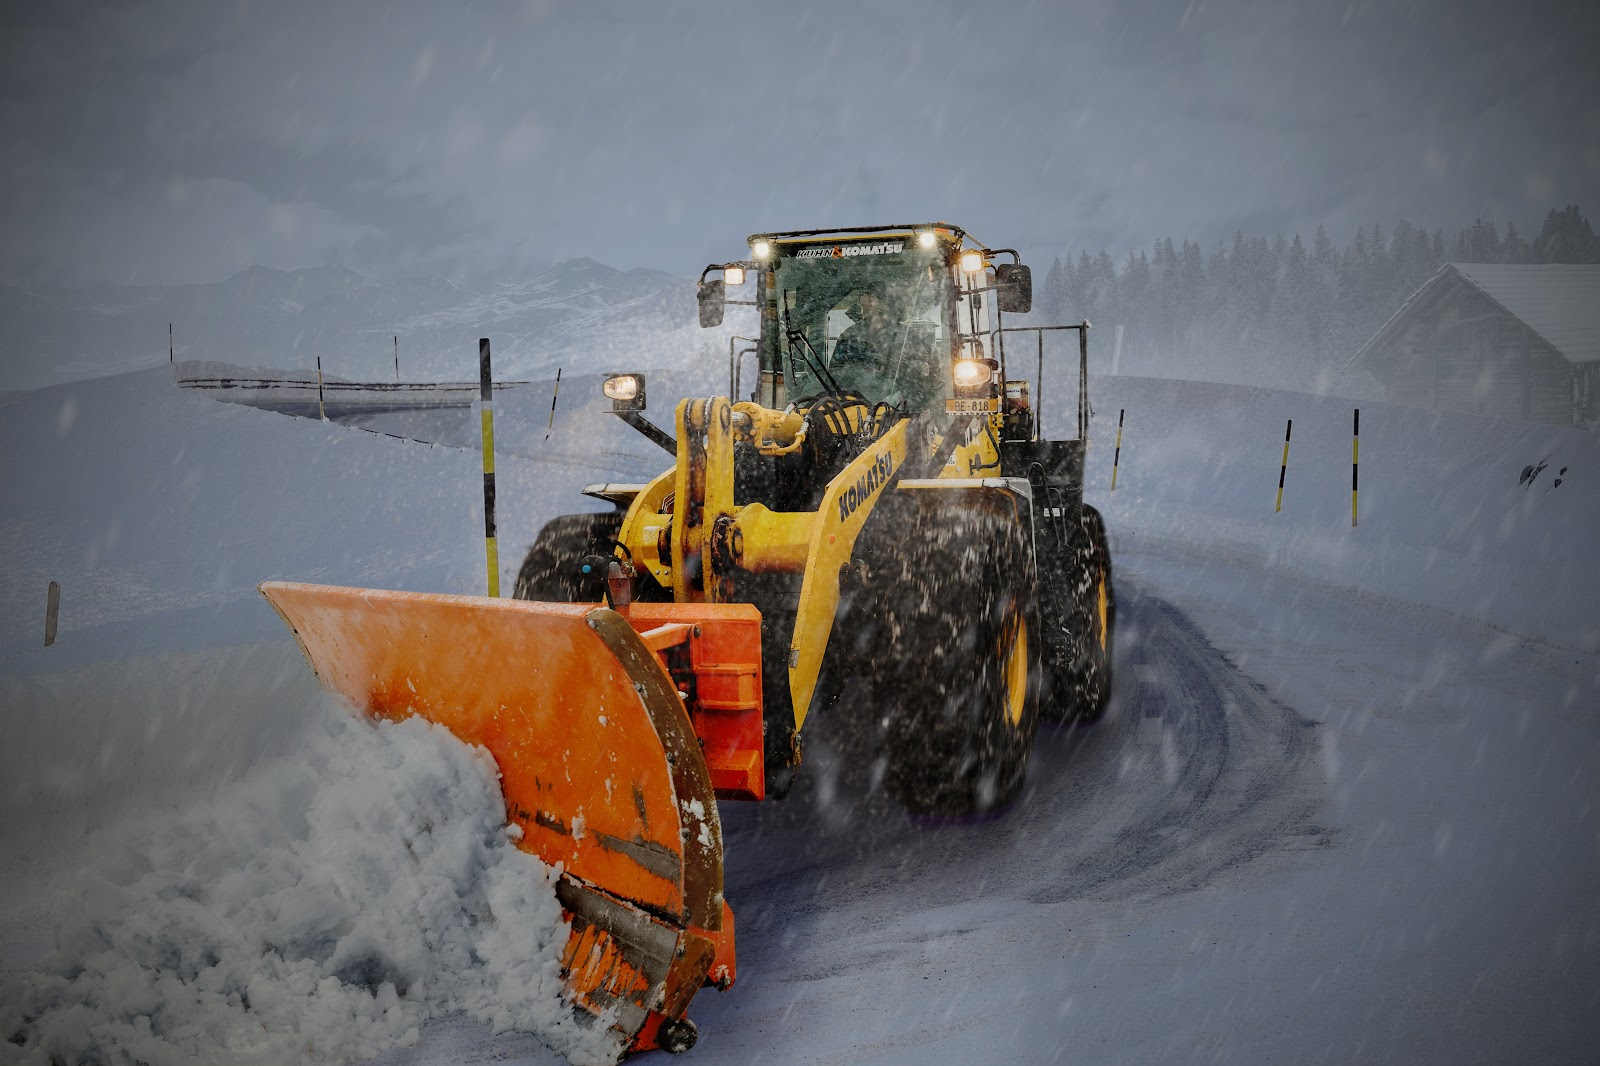 Snow plow preparing a business for winter weather to ensure the safety of employees.